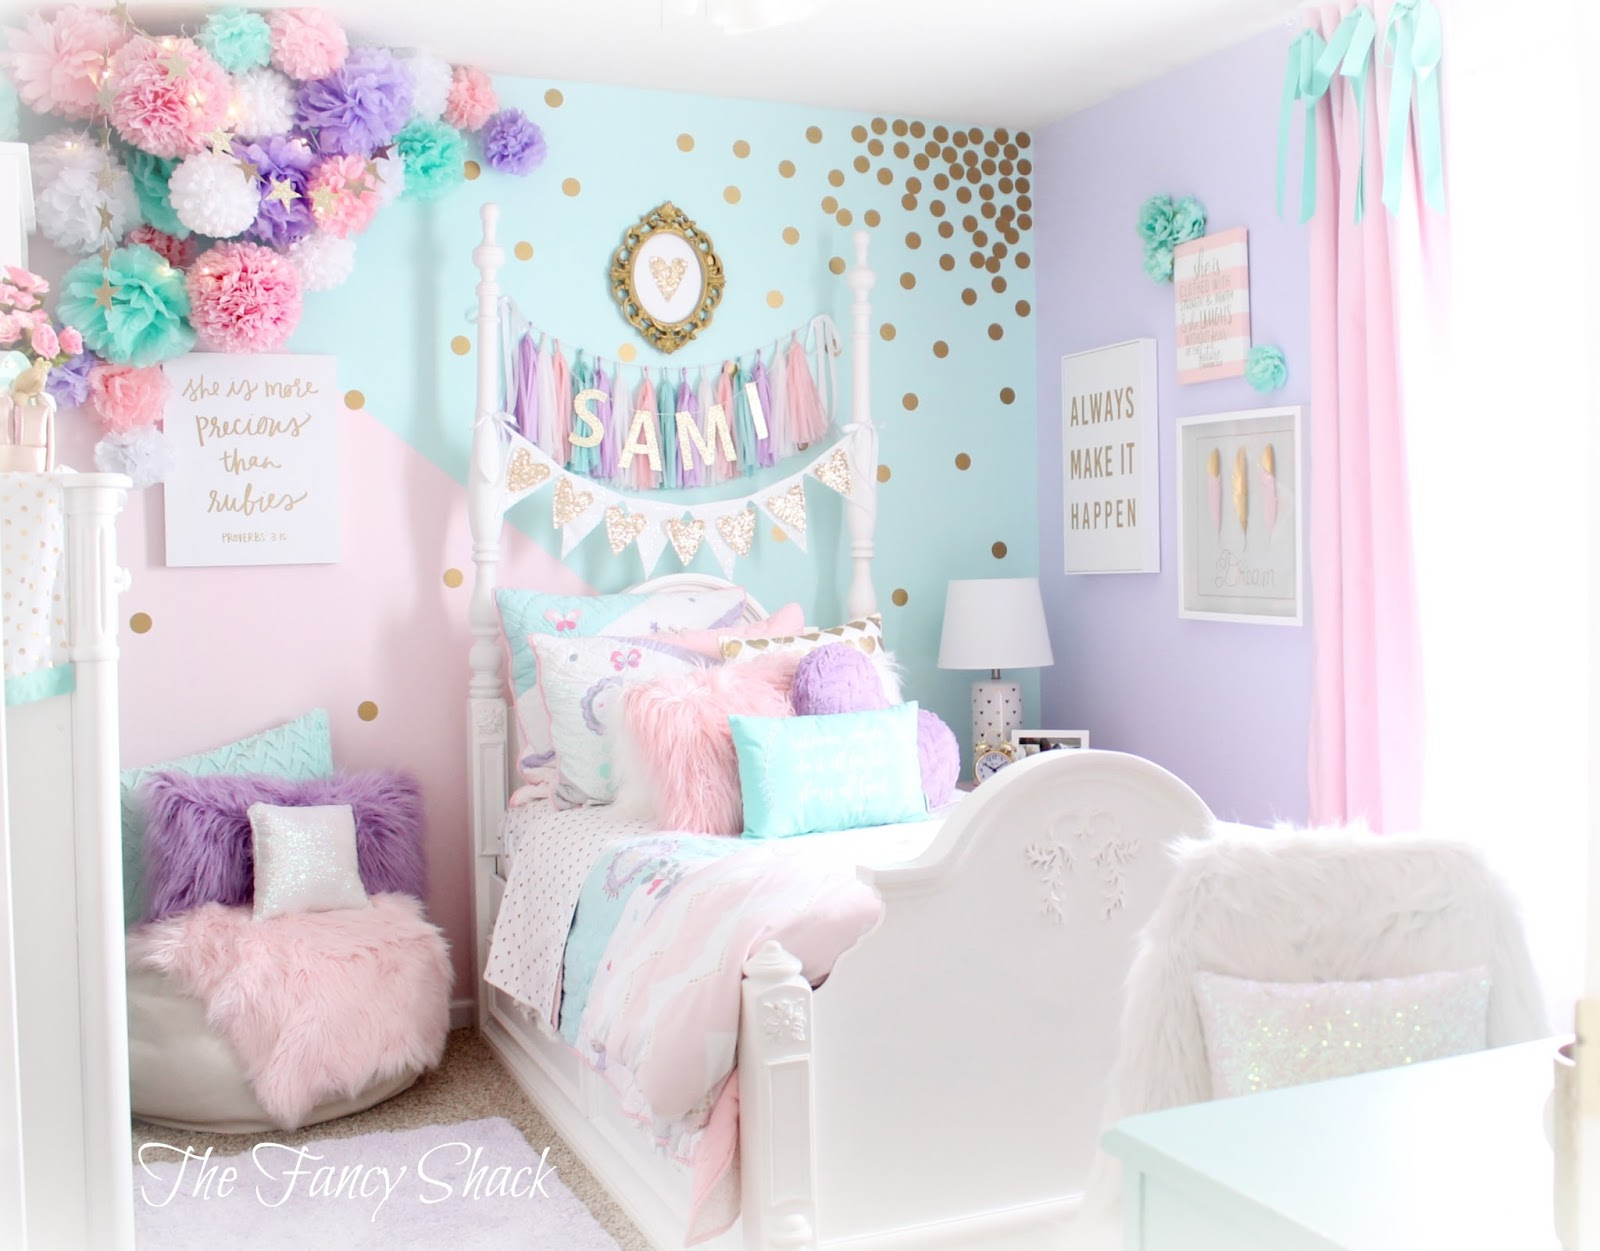 The fancy shack pastel girls room makeover for Pastel diy room decor